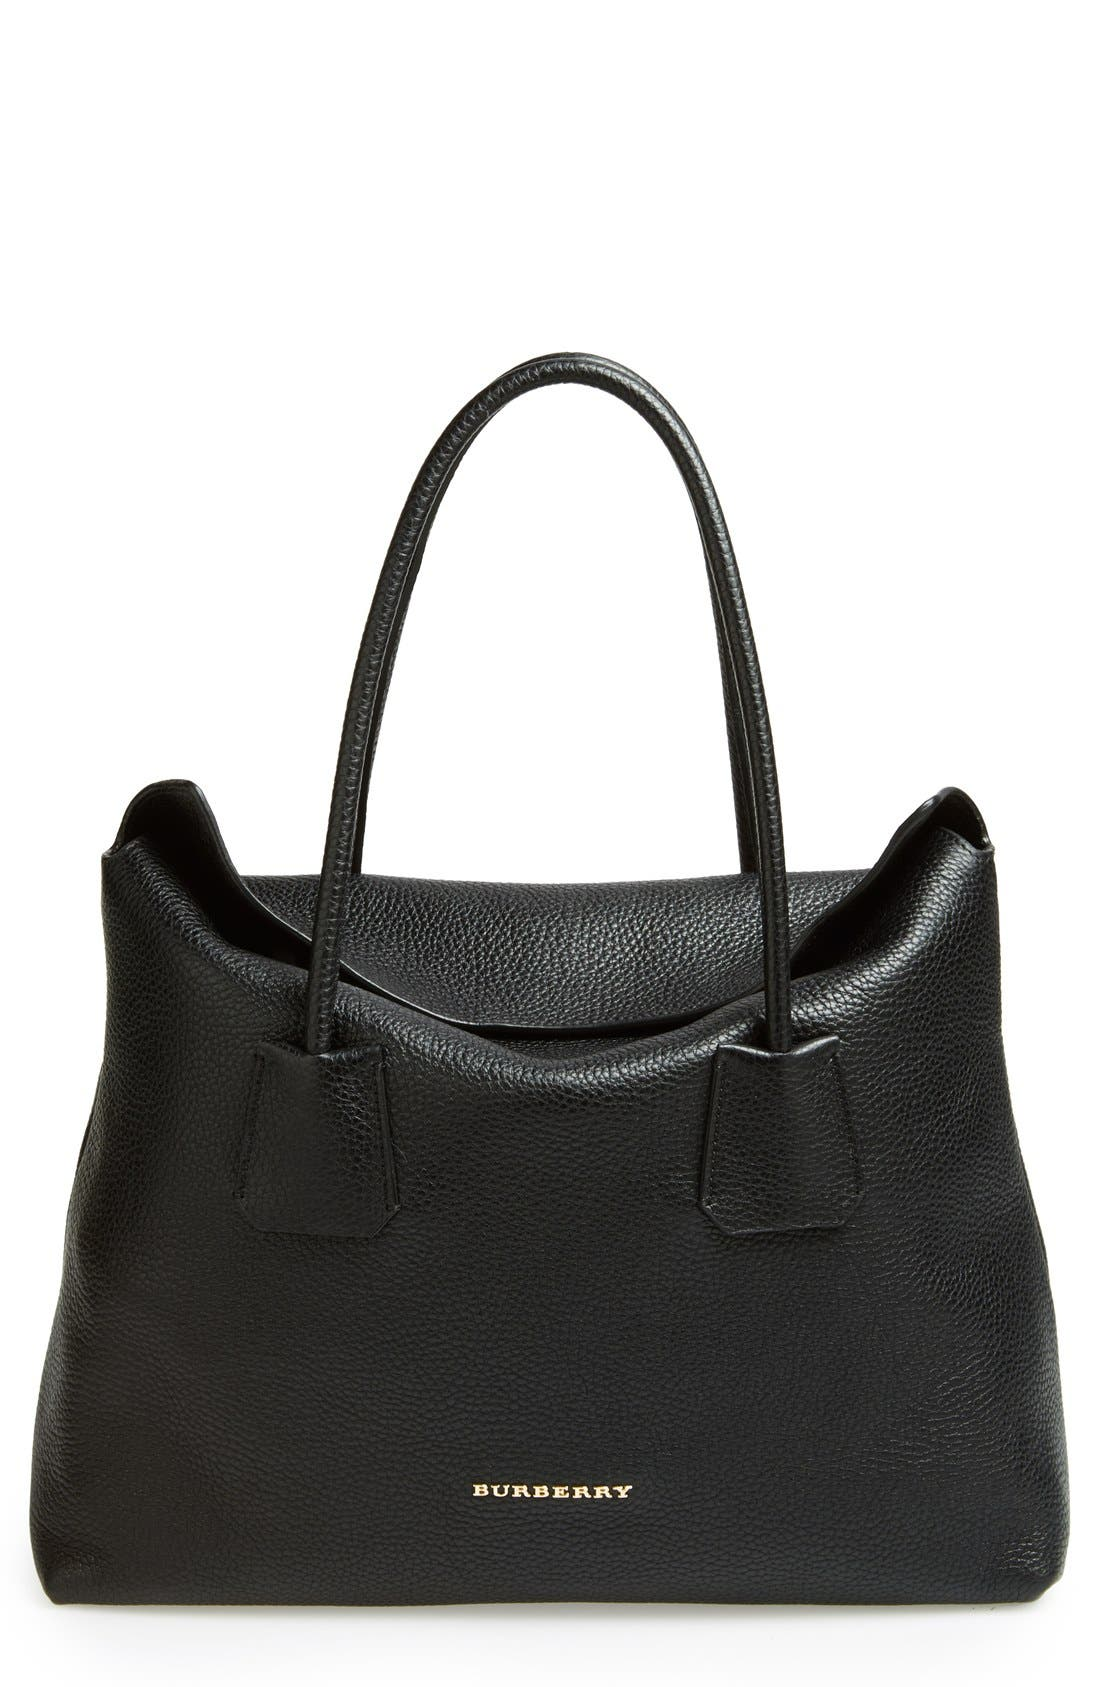 Alternate Image 1 Selected - Burberry 'Baynard' Leather Tote